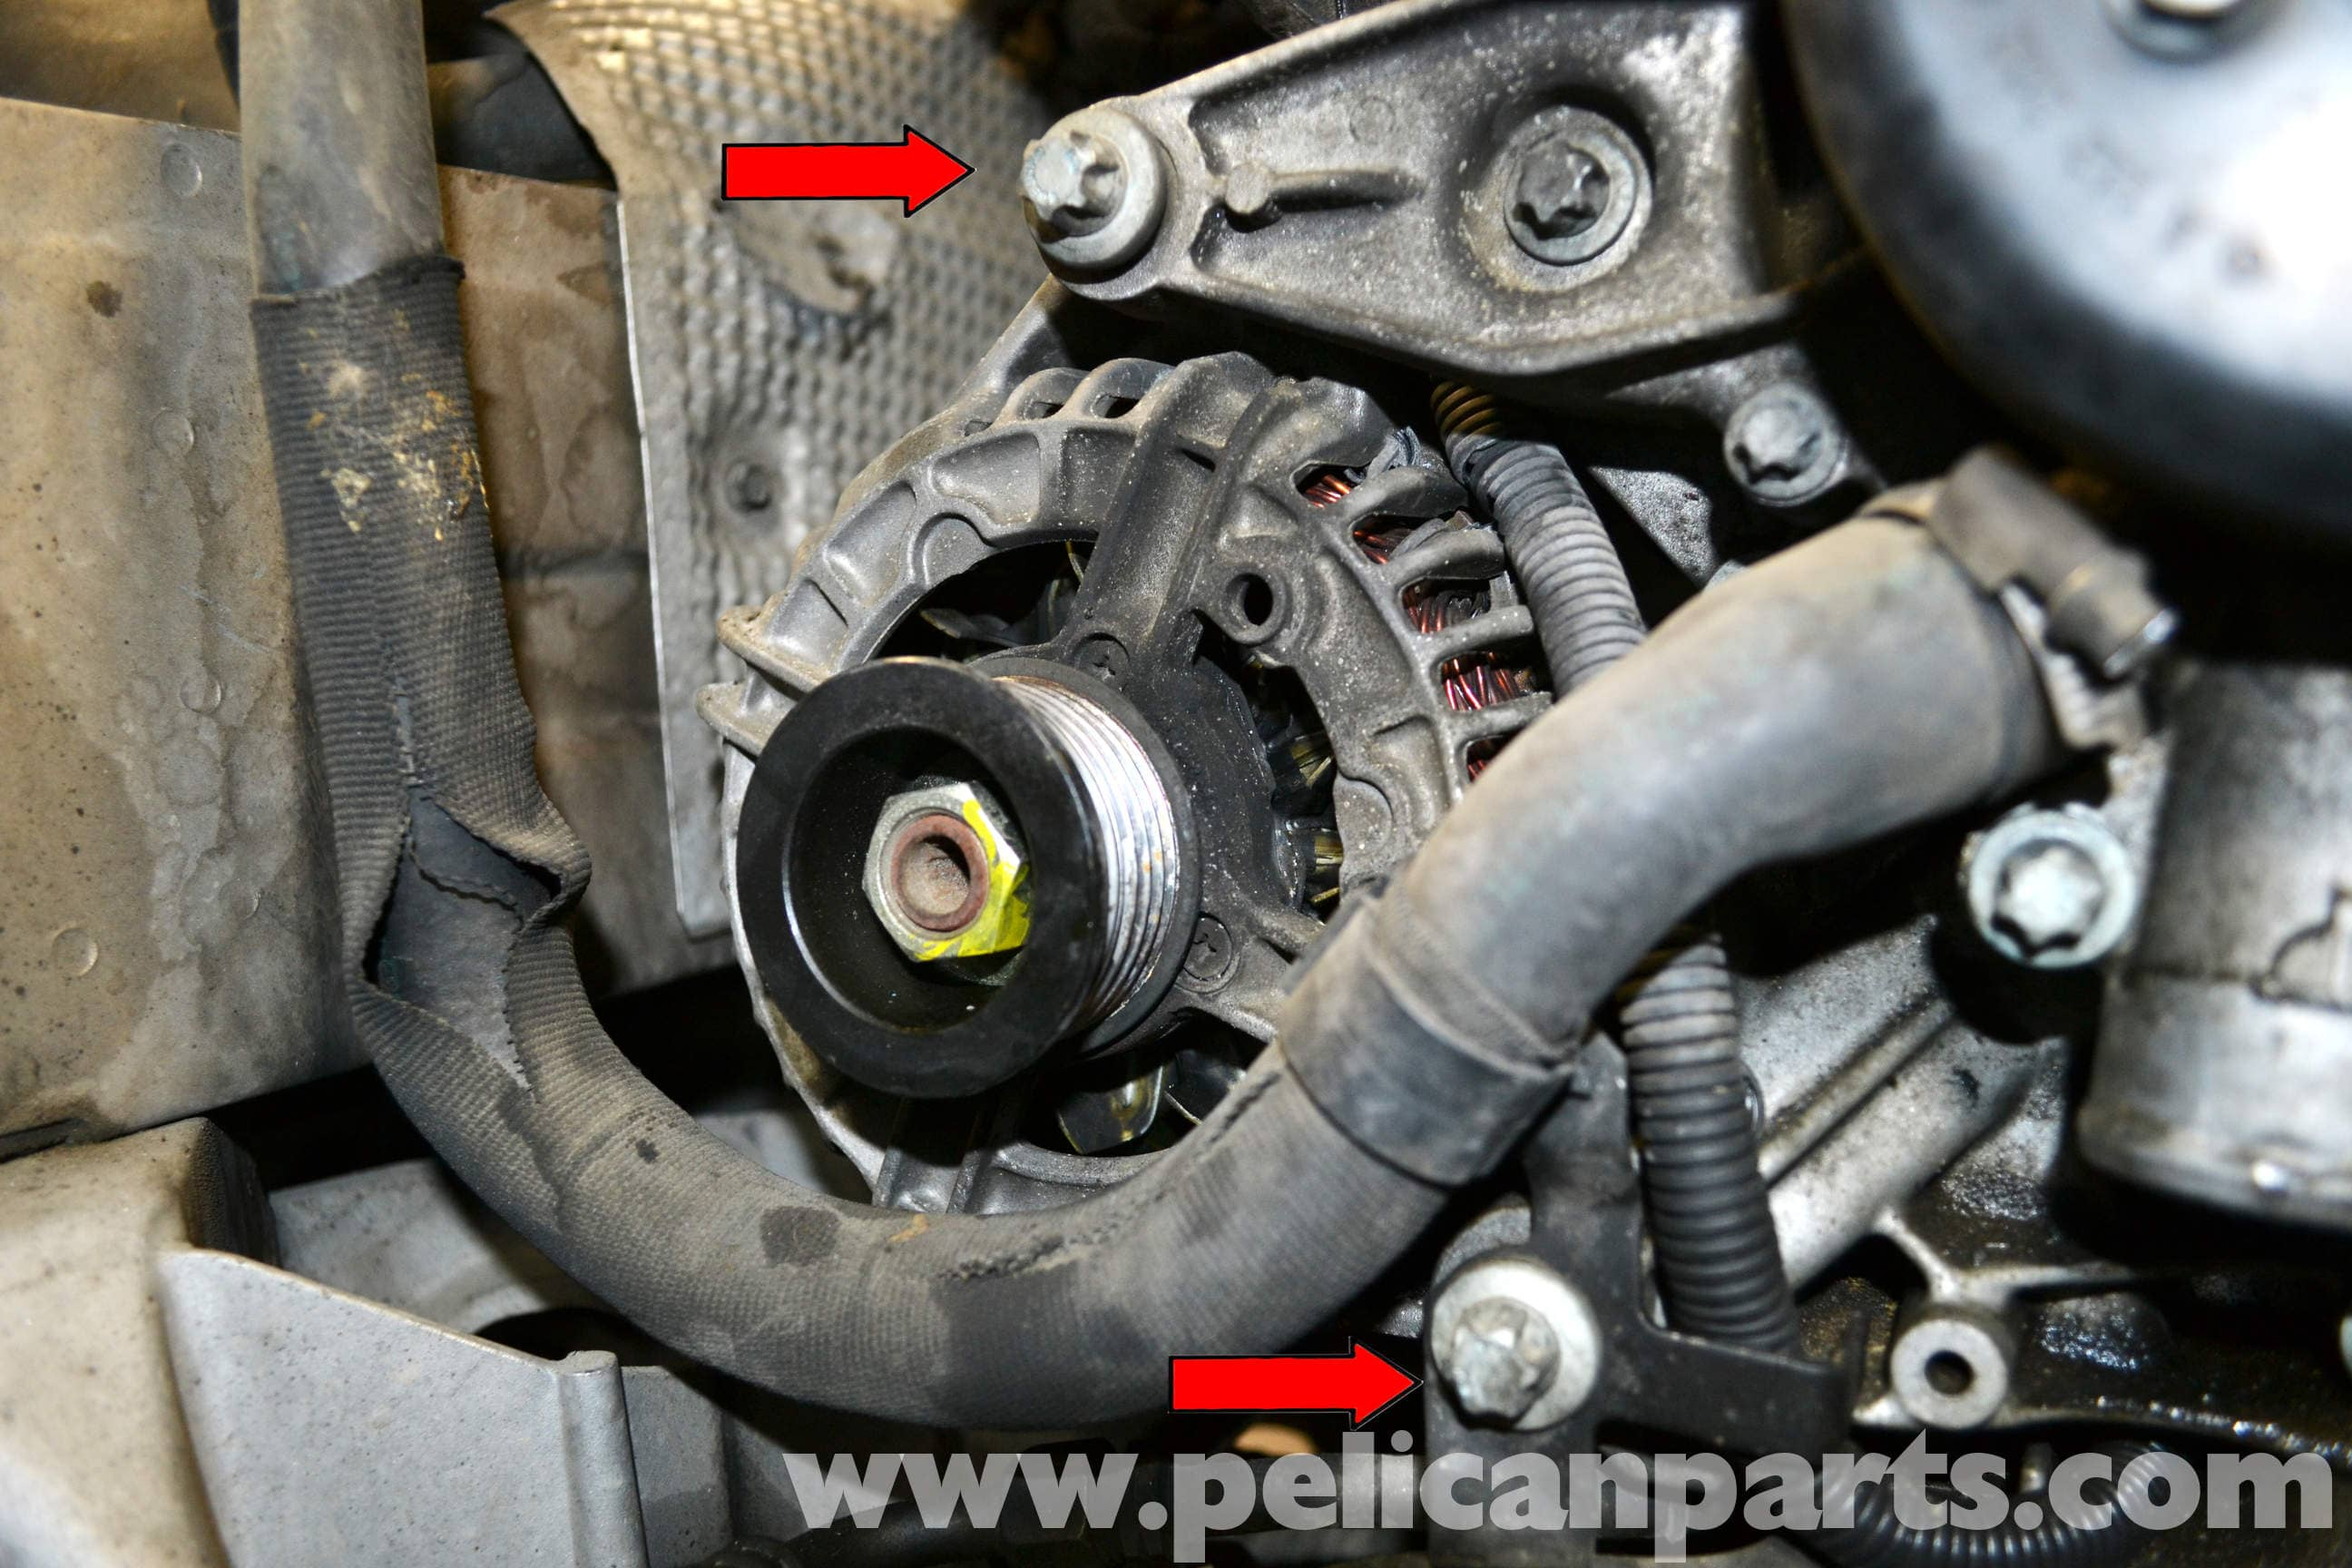 Mercedes benz w203 timing chain tensioner replacement for Mercedes benz ml500 crankshaft position sensor